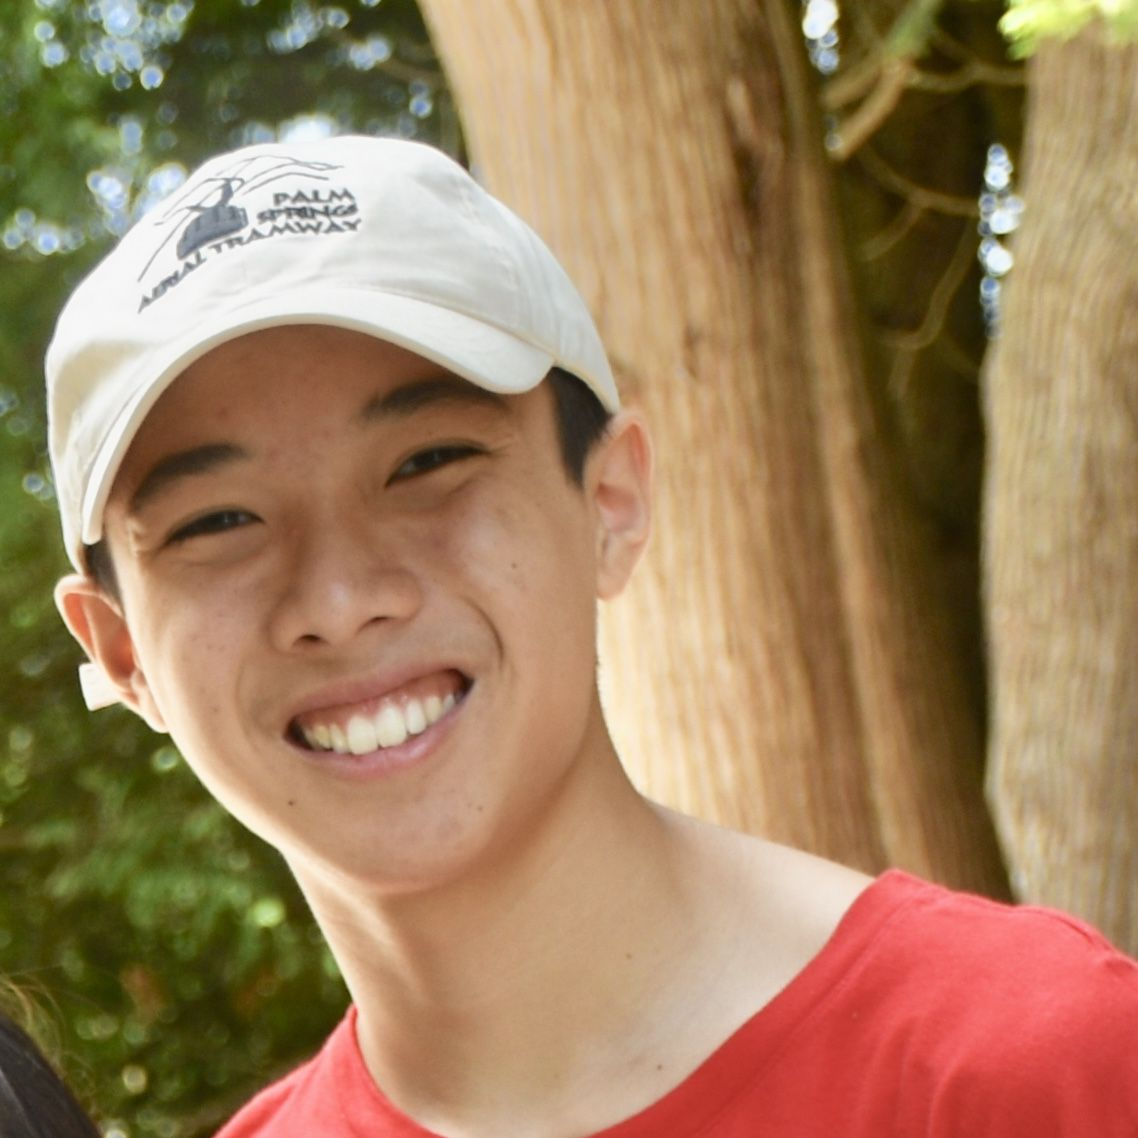 Meet Justin L. - 16 years old ∙ volleyball & gaming enthusiast ∙ first time-camper